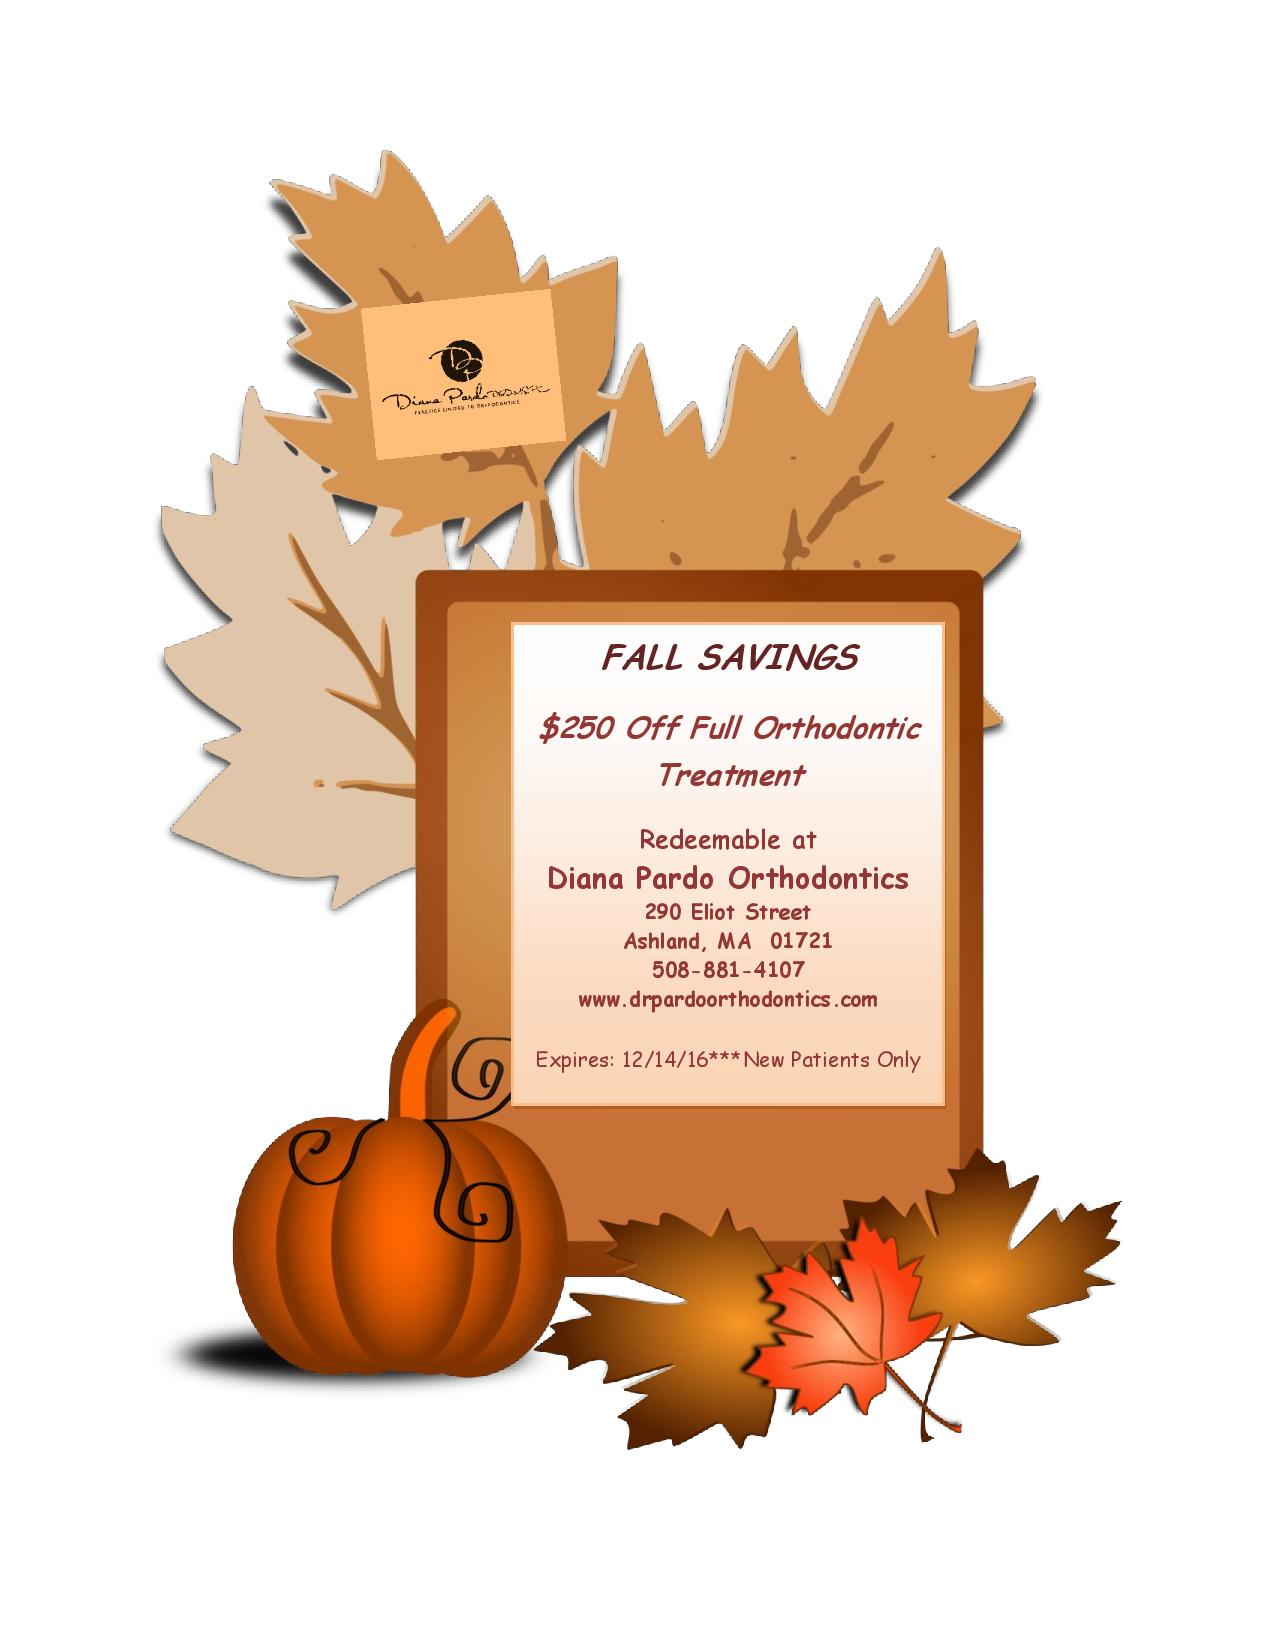 Fall Savings ABA Coupon 11.4.2016 JPEG